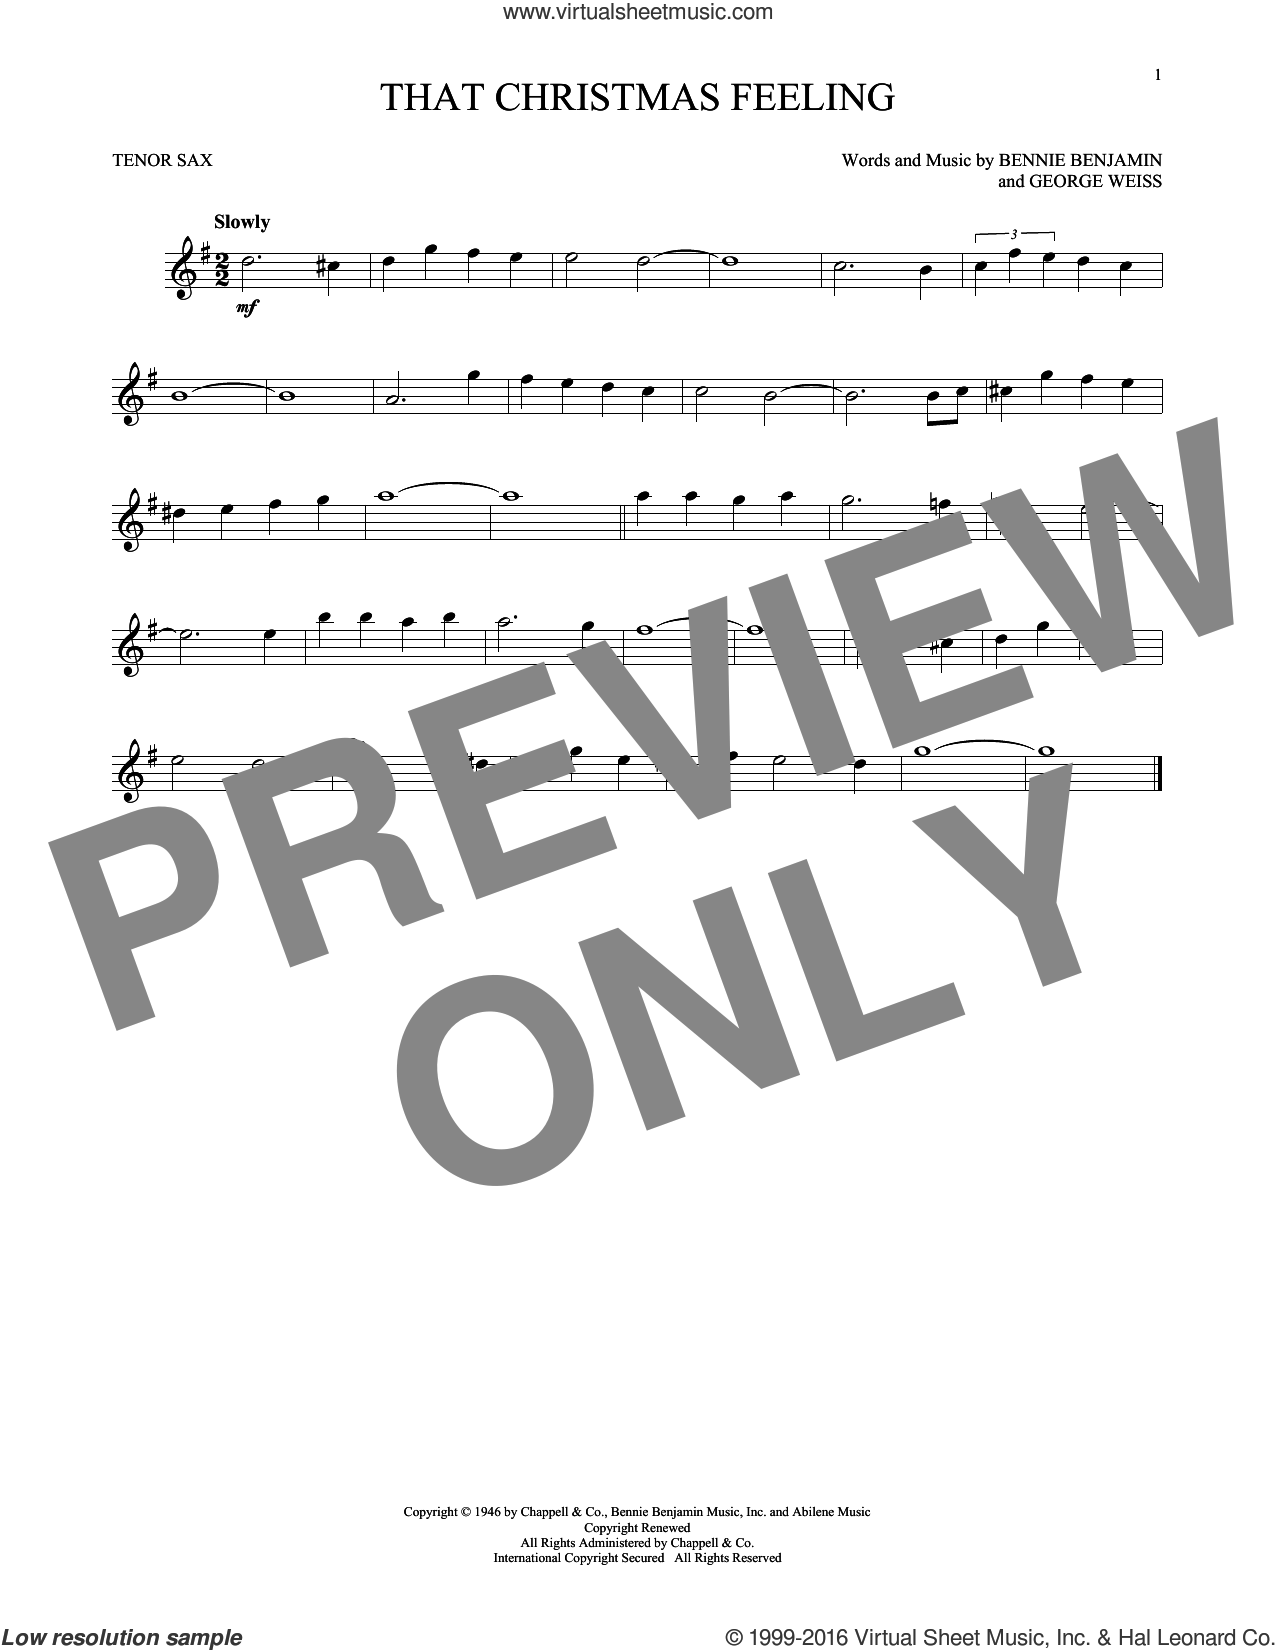 That Christmas Feeling sheet music for tenor saxophone solo by George David Weiss, Bennie Benjamin and Bennie Benjamin & George Weiss, intermediate skill level